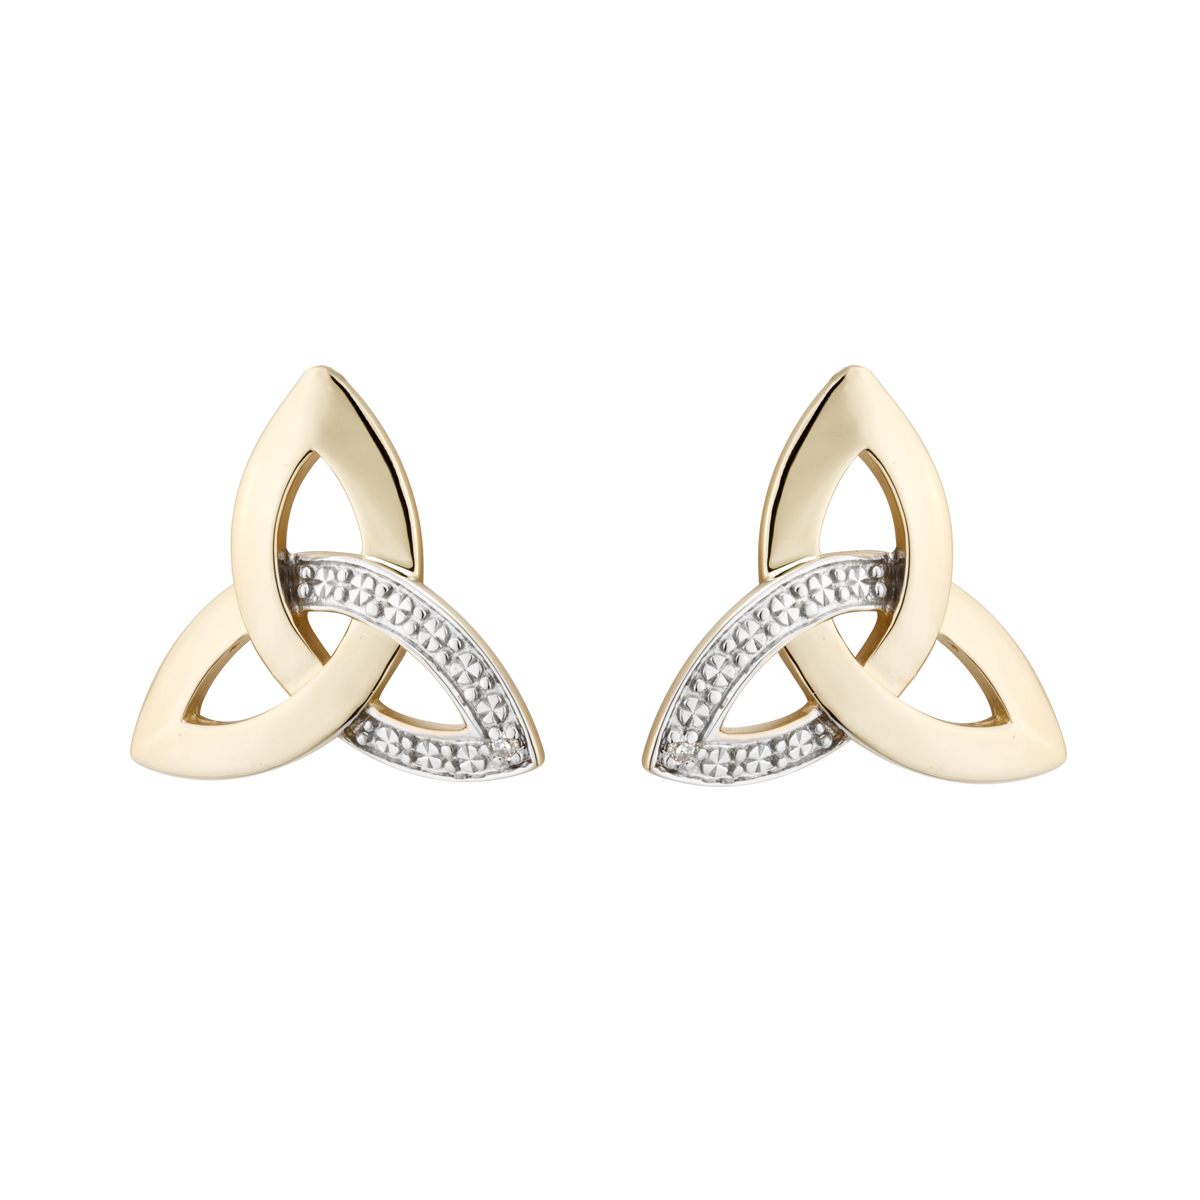 Irish Earrings | 14k Yellow Gold Stud Trinity Knot Diamond Earrings